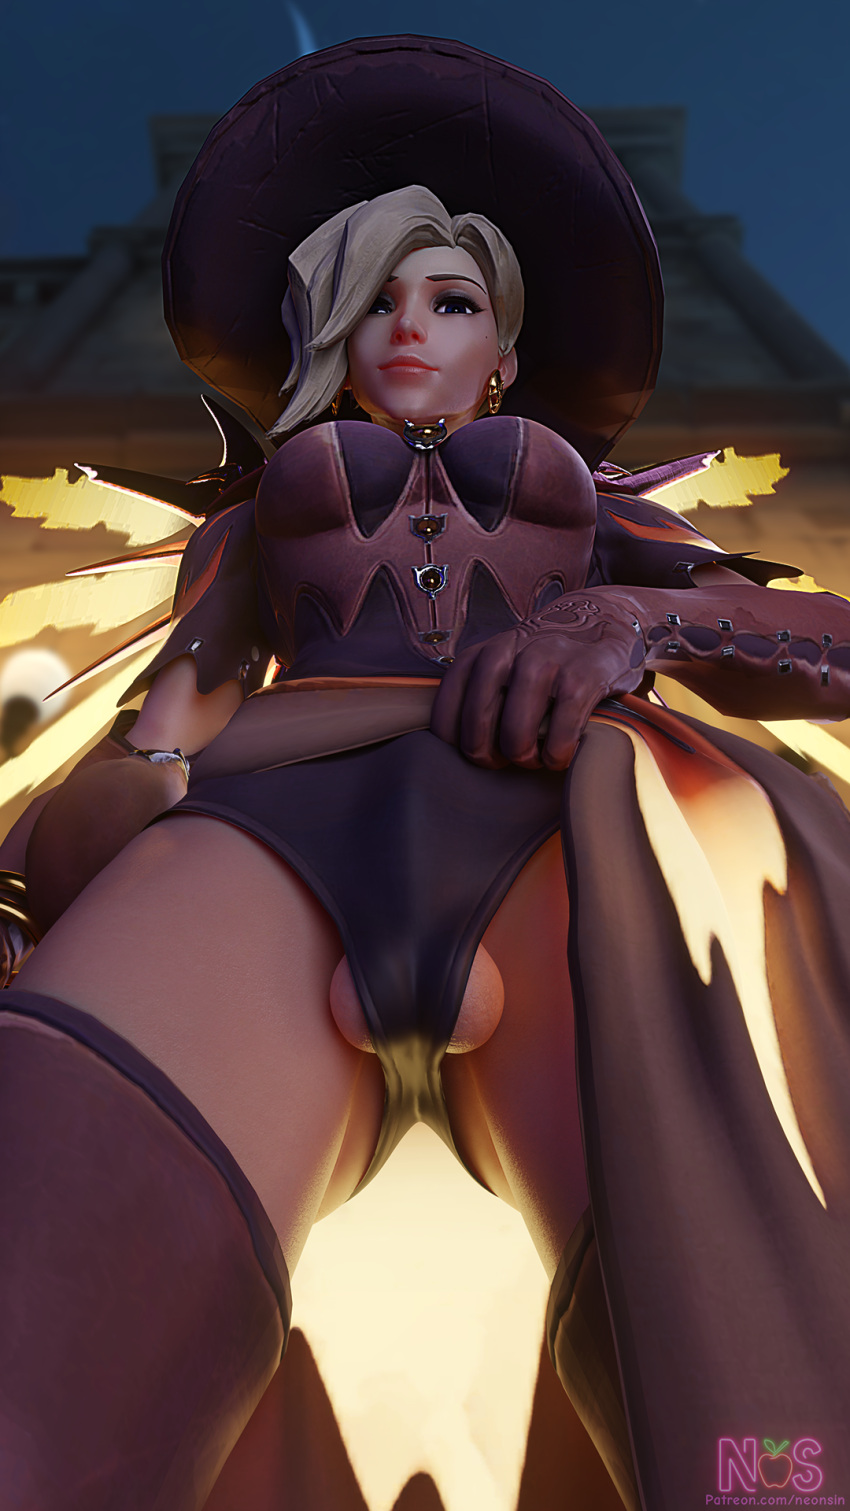 overwatch-game-porn-–-dickgirl,-looking-at-viewer.